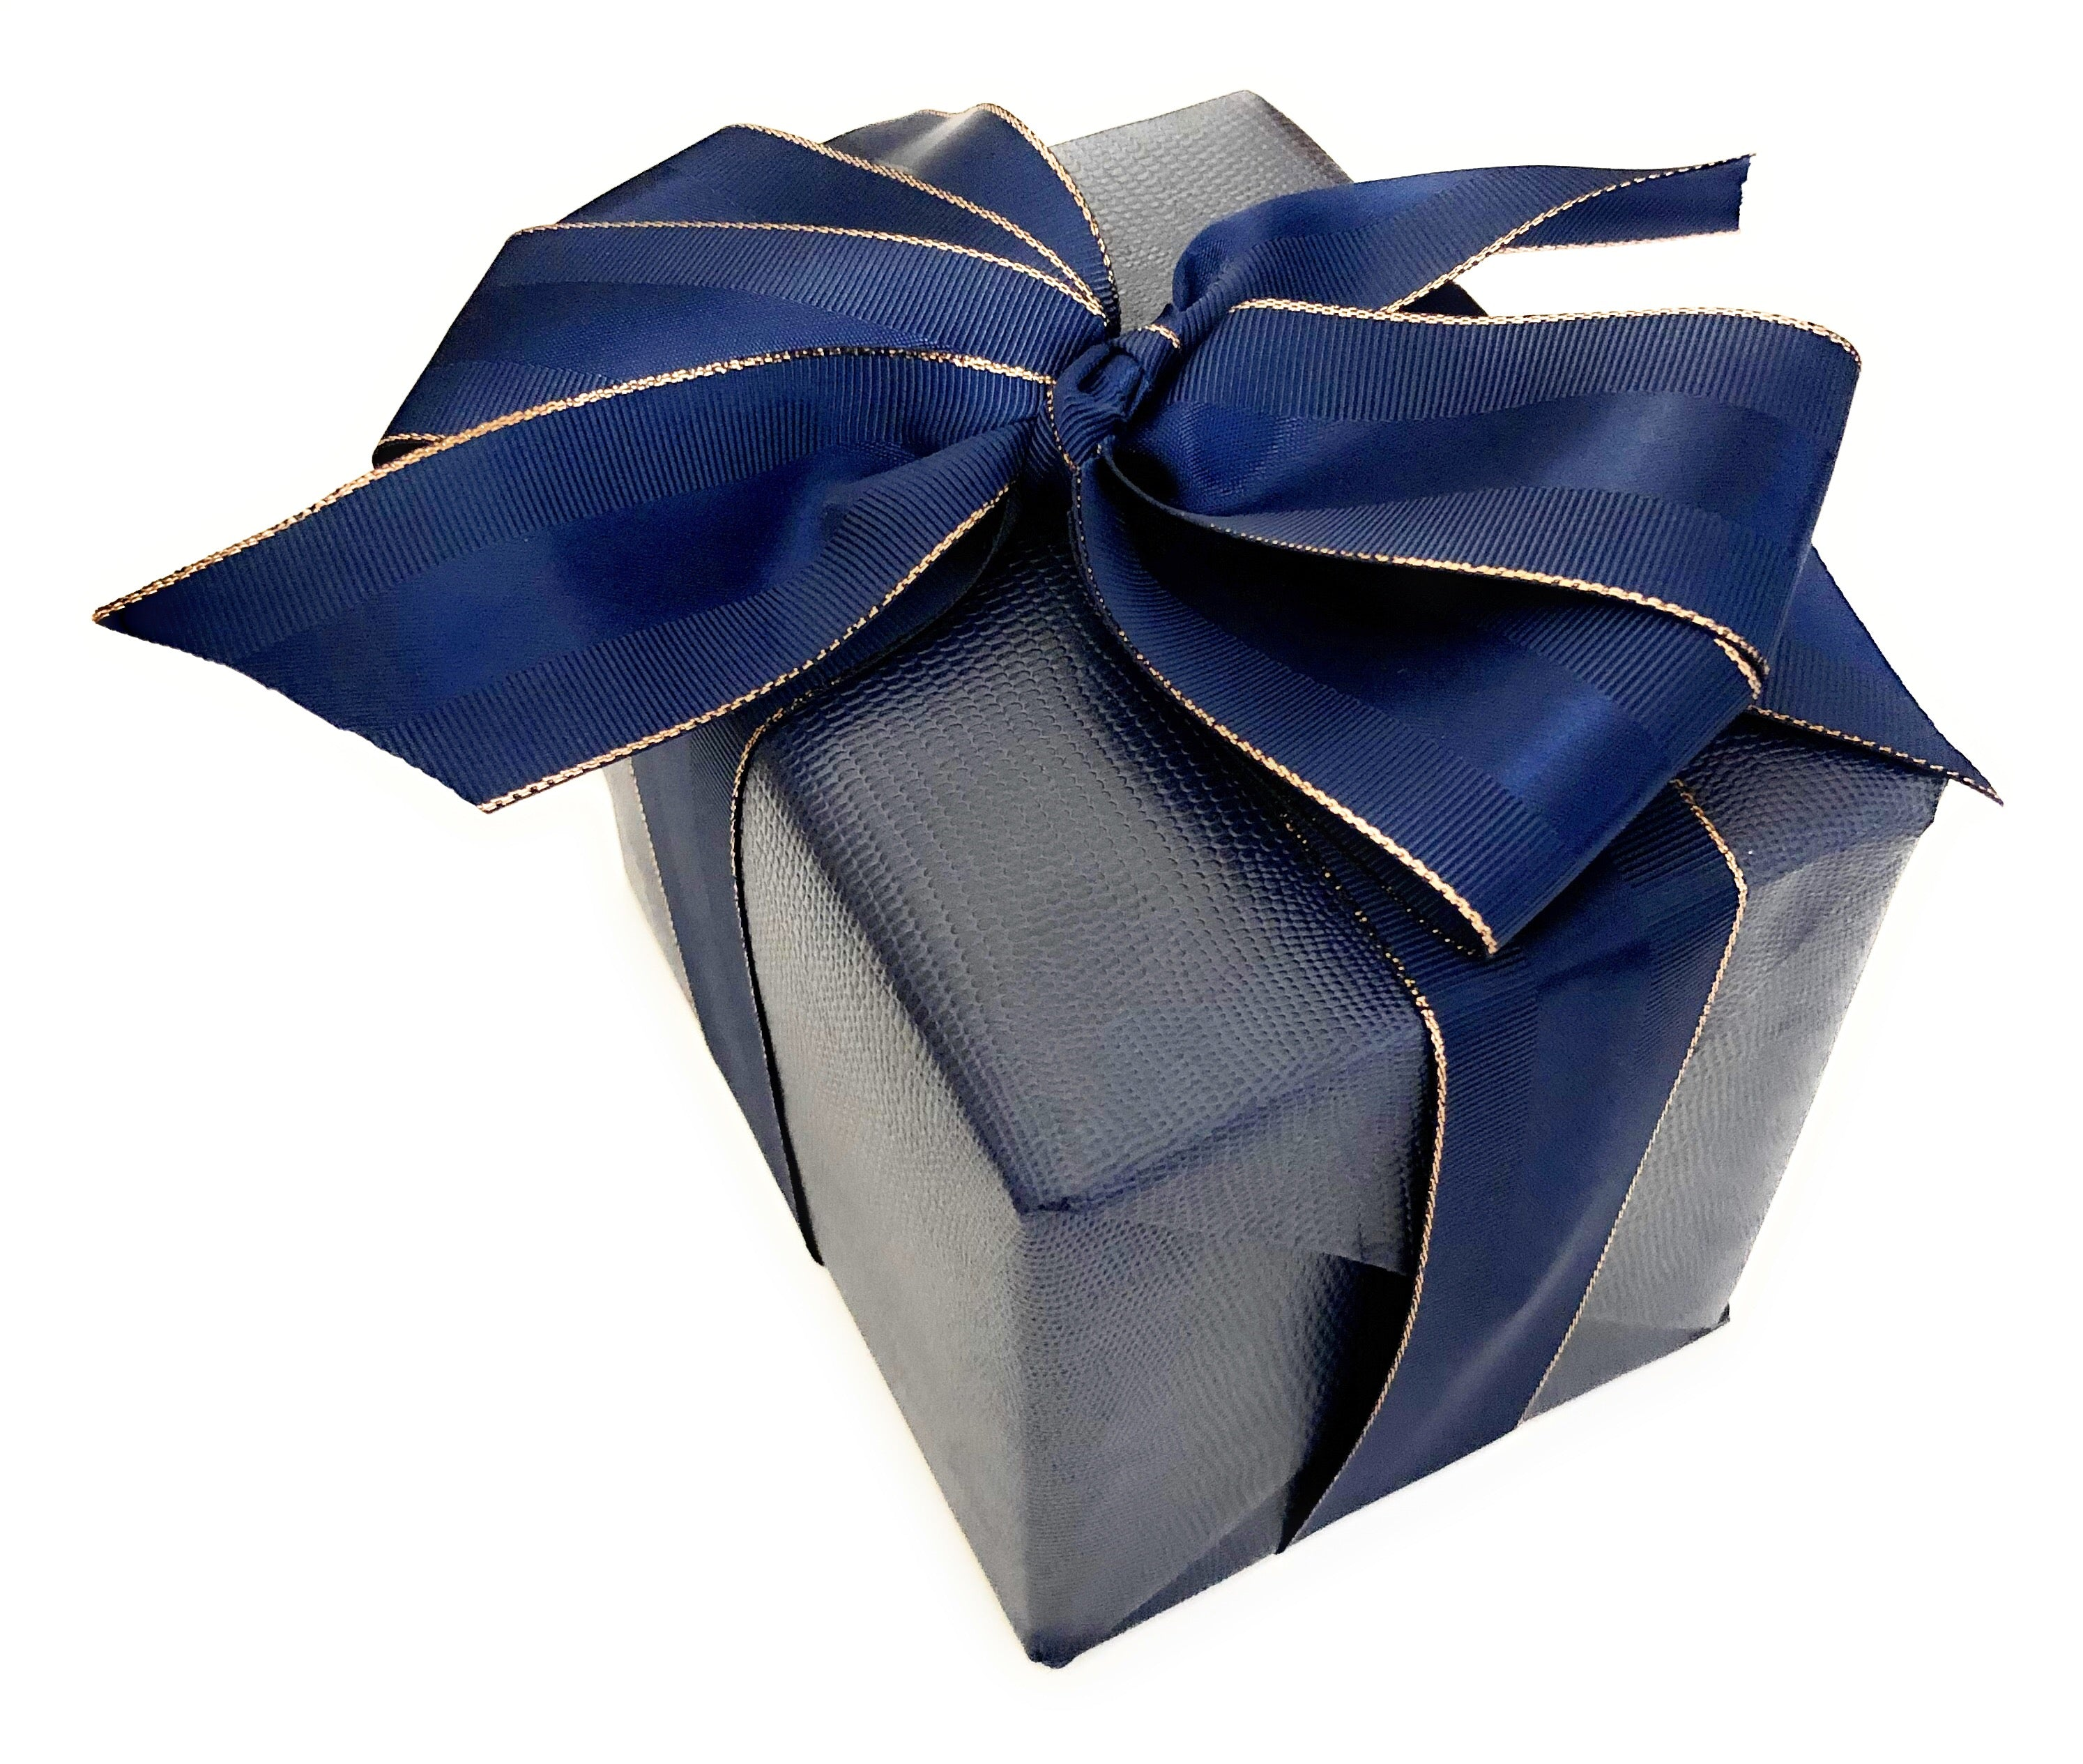 Urban Vintage LA Navy Blue Faux Leather Gift Wrap Paper with Matching Navy Blue Grosgrain Ribbon